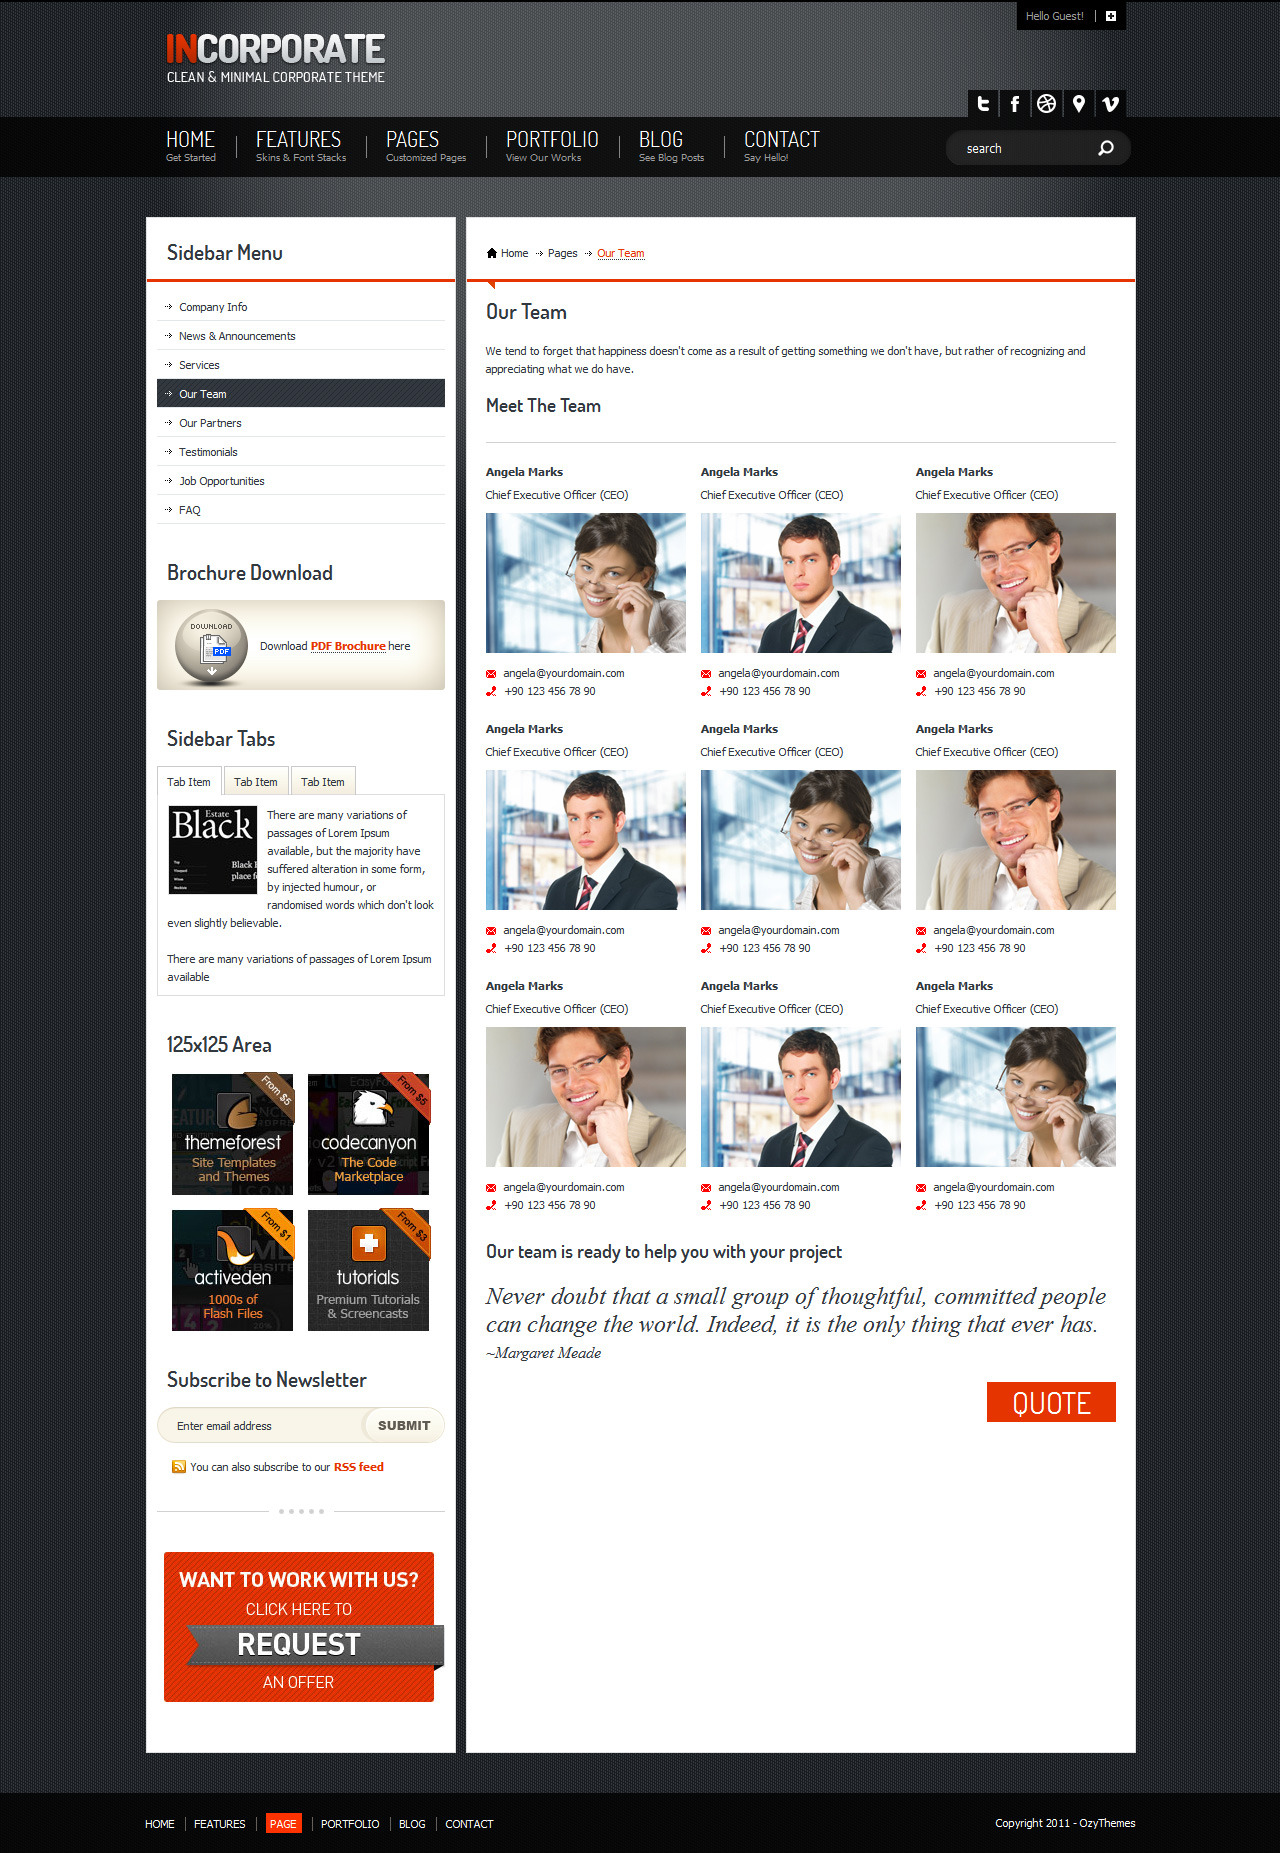 Incorporate Portfolio HTML Template - Our Team page and also included a quote